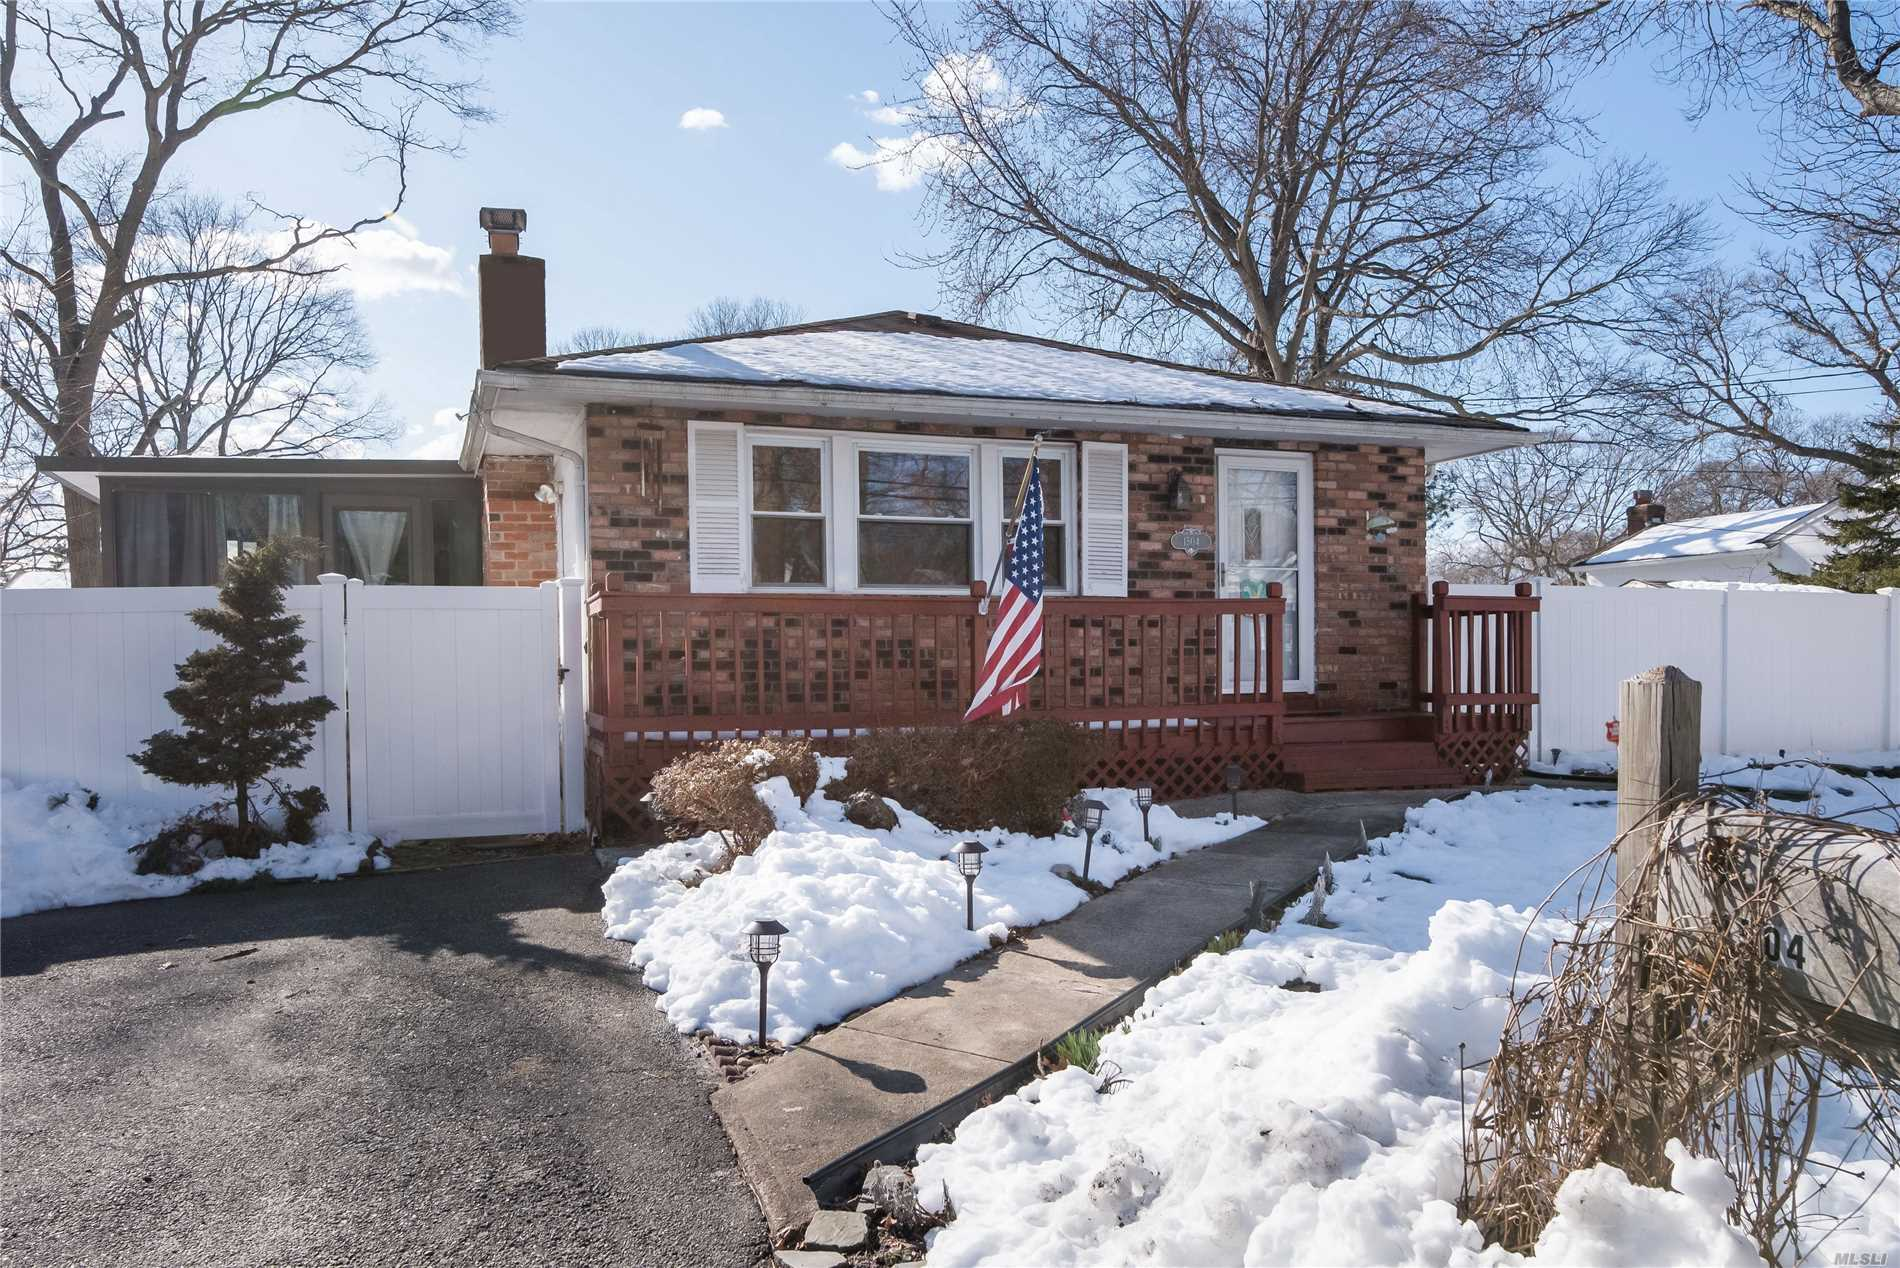 1504 Claas Ave - Holbrook, New York